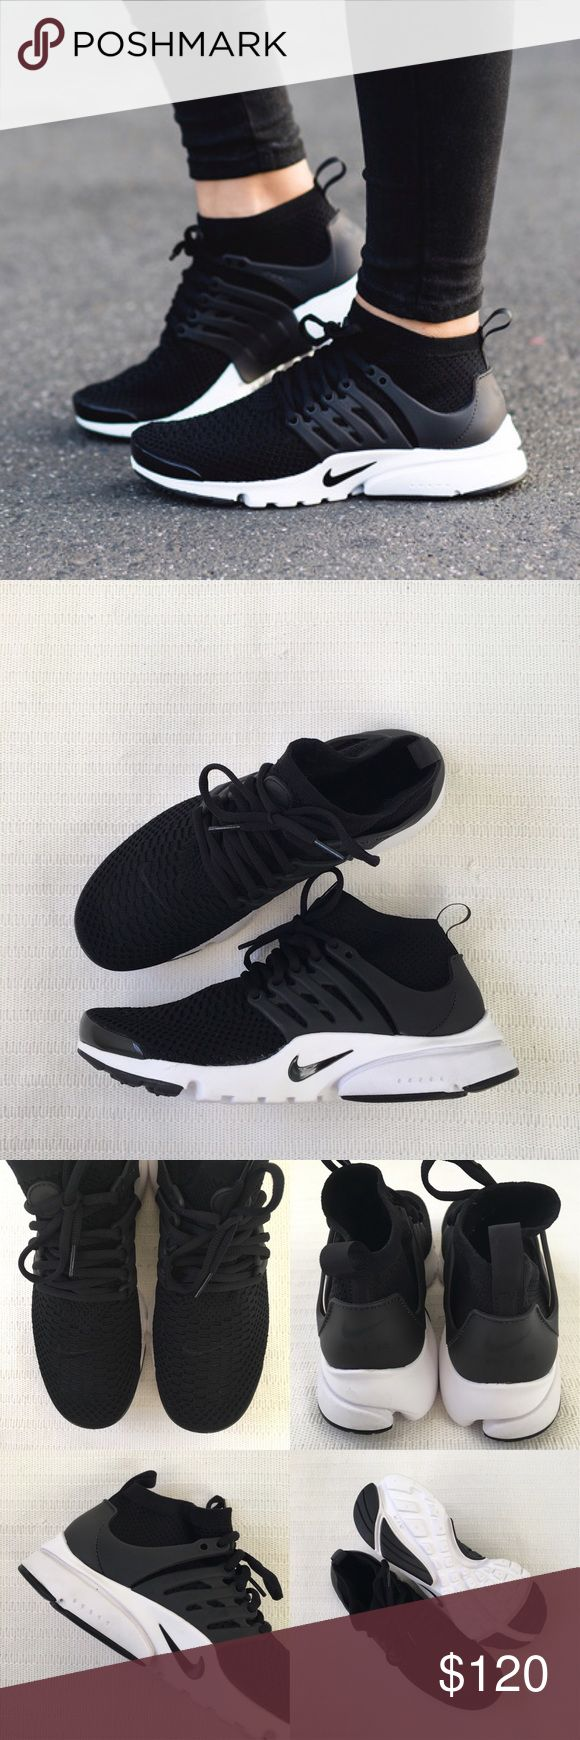 Women's Nike Air Presto Ultra Flyknit Sneakers Women's Nike Air Presto Ultra Flyknit Black Sneakers Style/Color: 833860-101  • Women's size 9.5  • NEW in box (no lid) • No trades •100% authentic Nike Shoes Sneakers